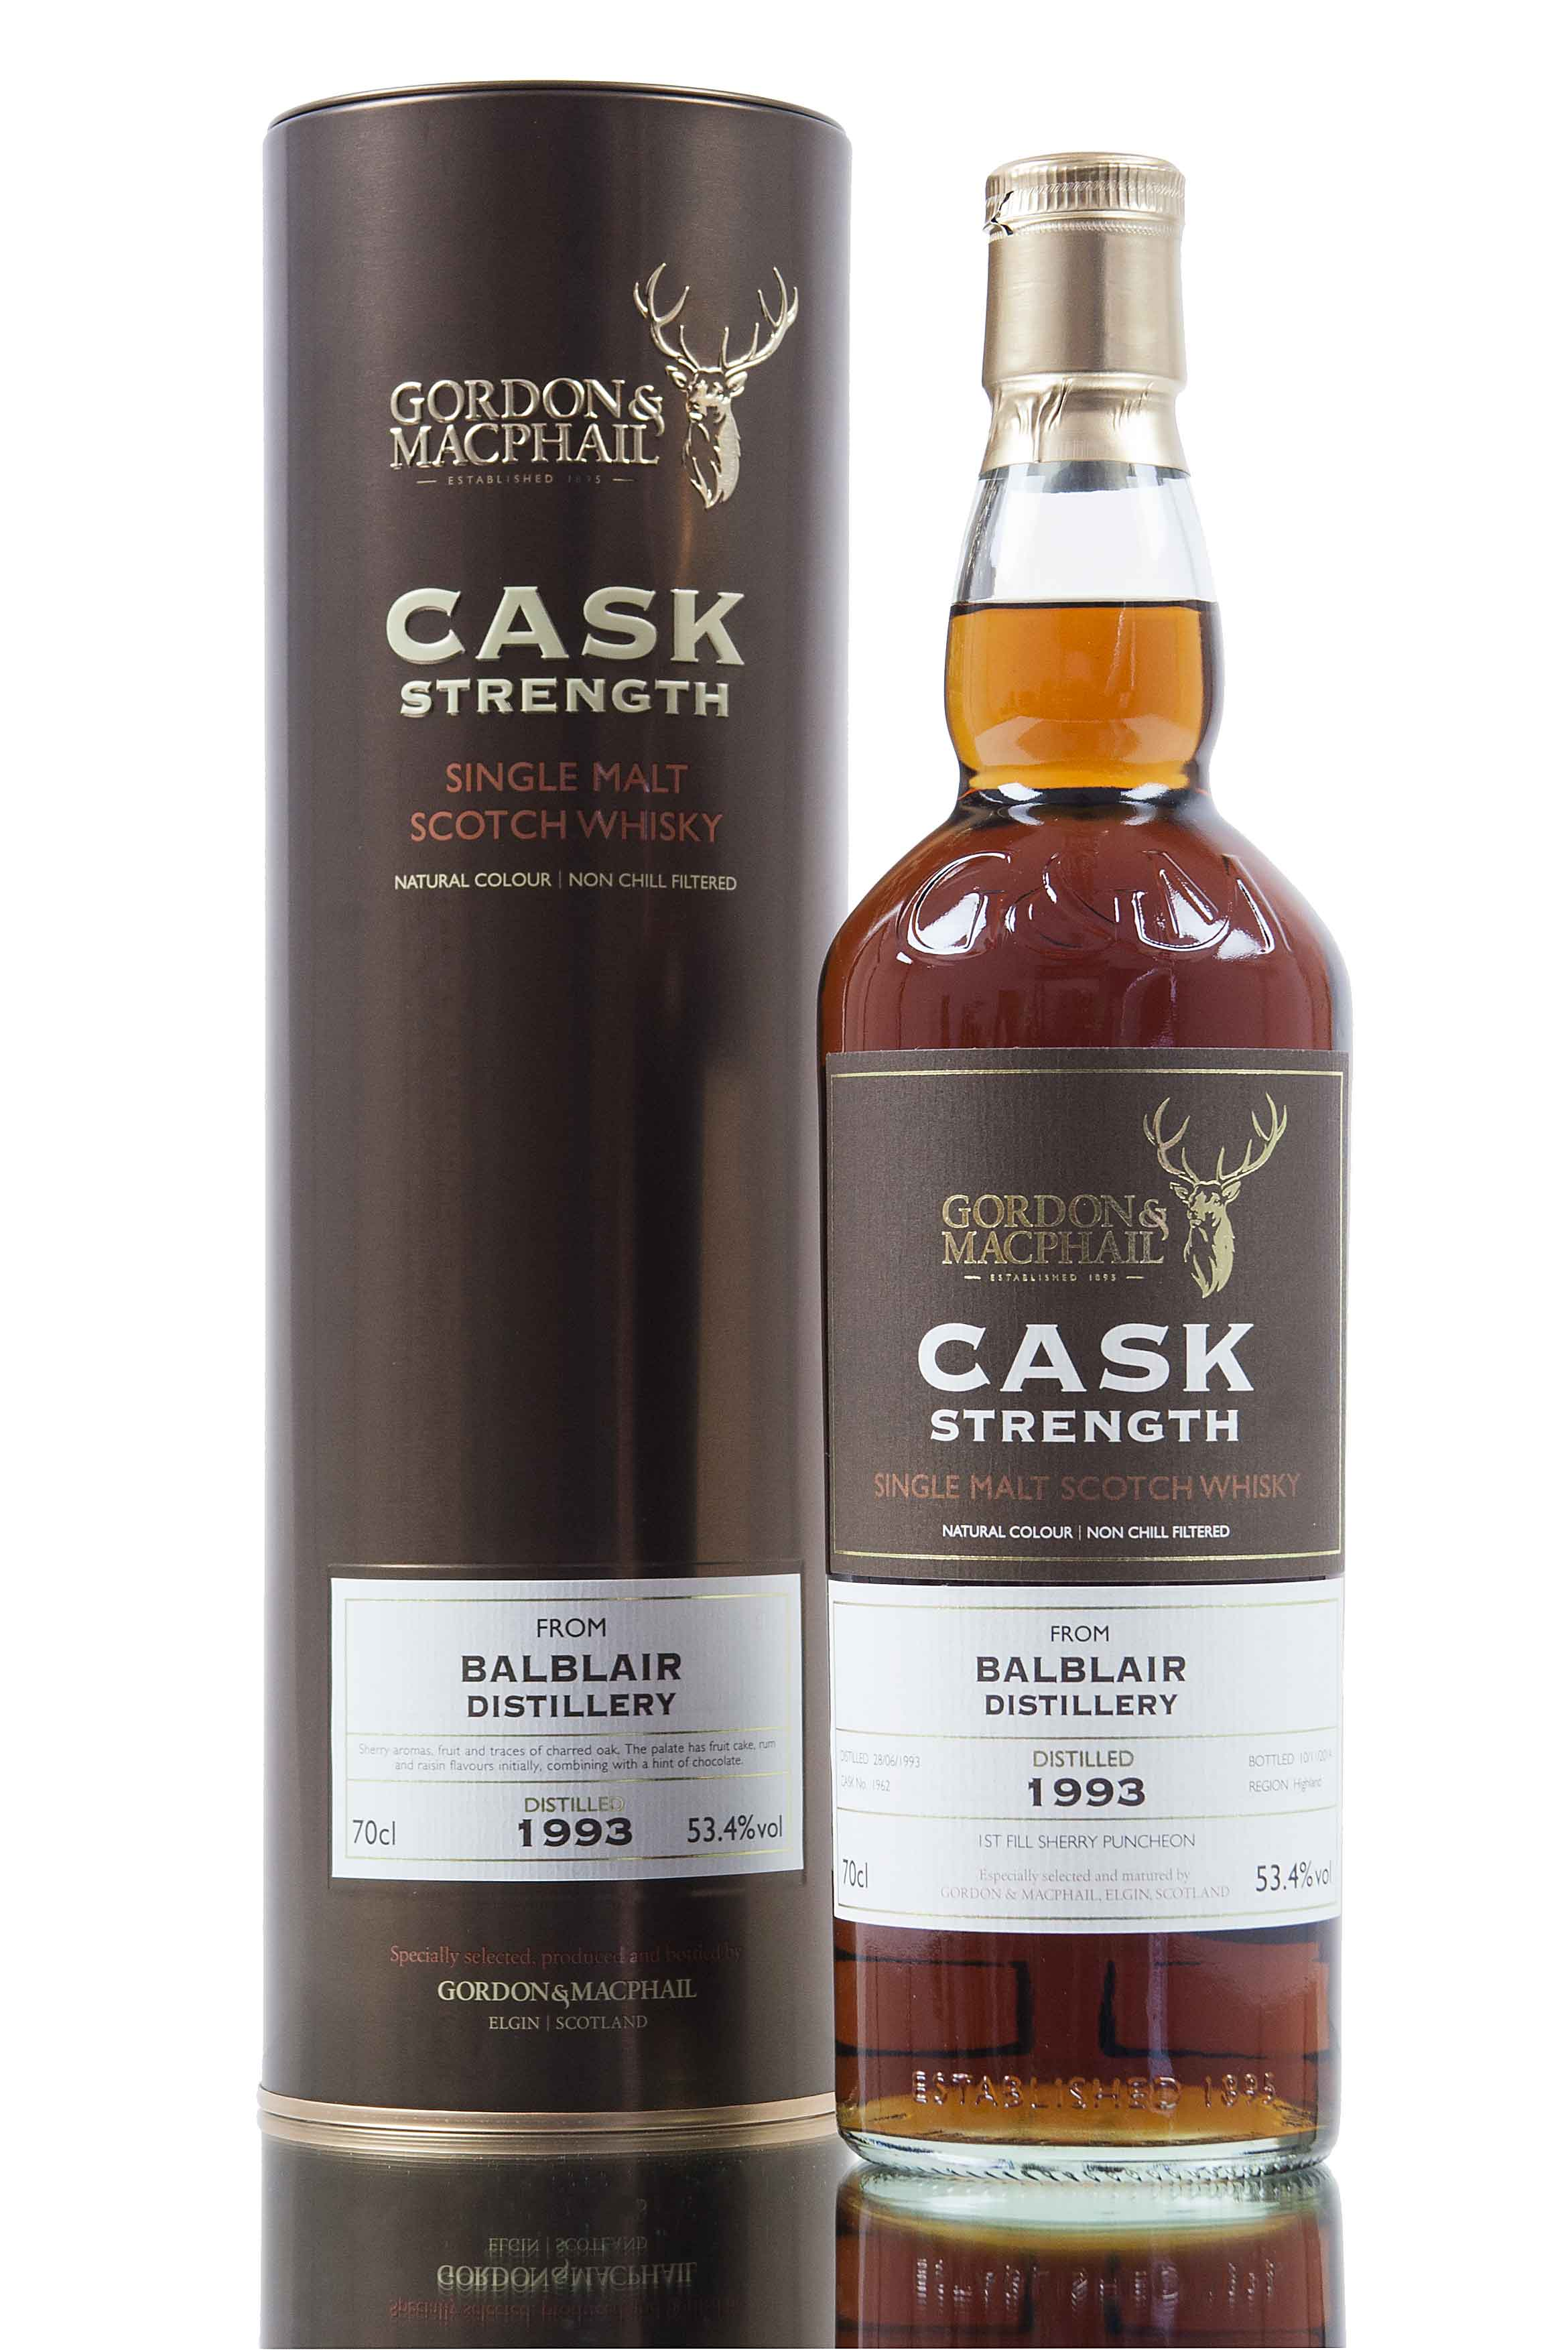 Balblair 21 Year Old - 1993 / Cask 1962 / Cask Strength (G&M)